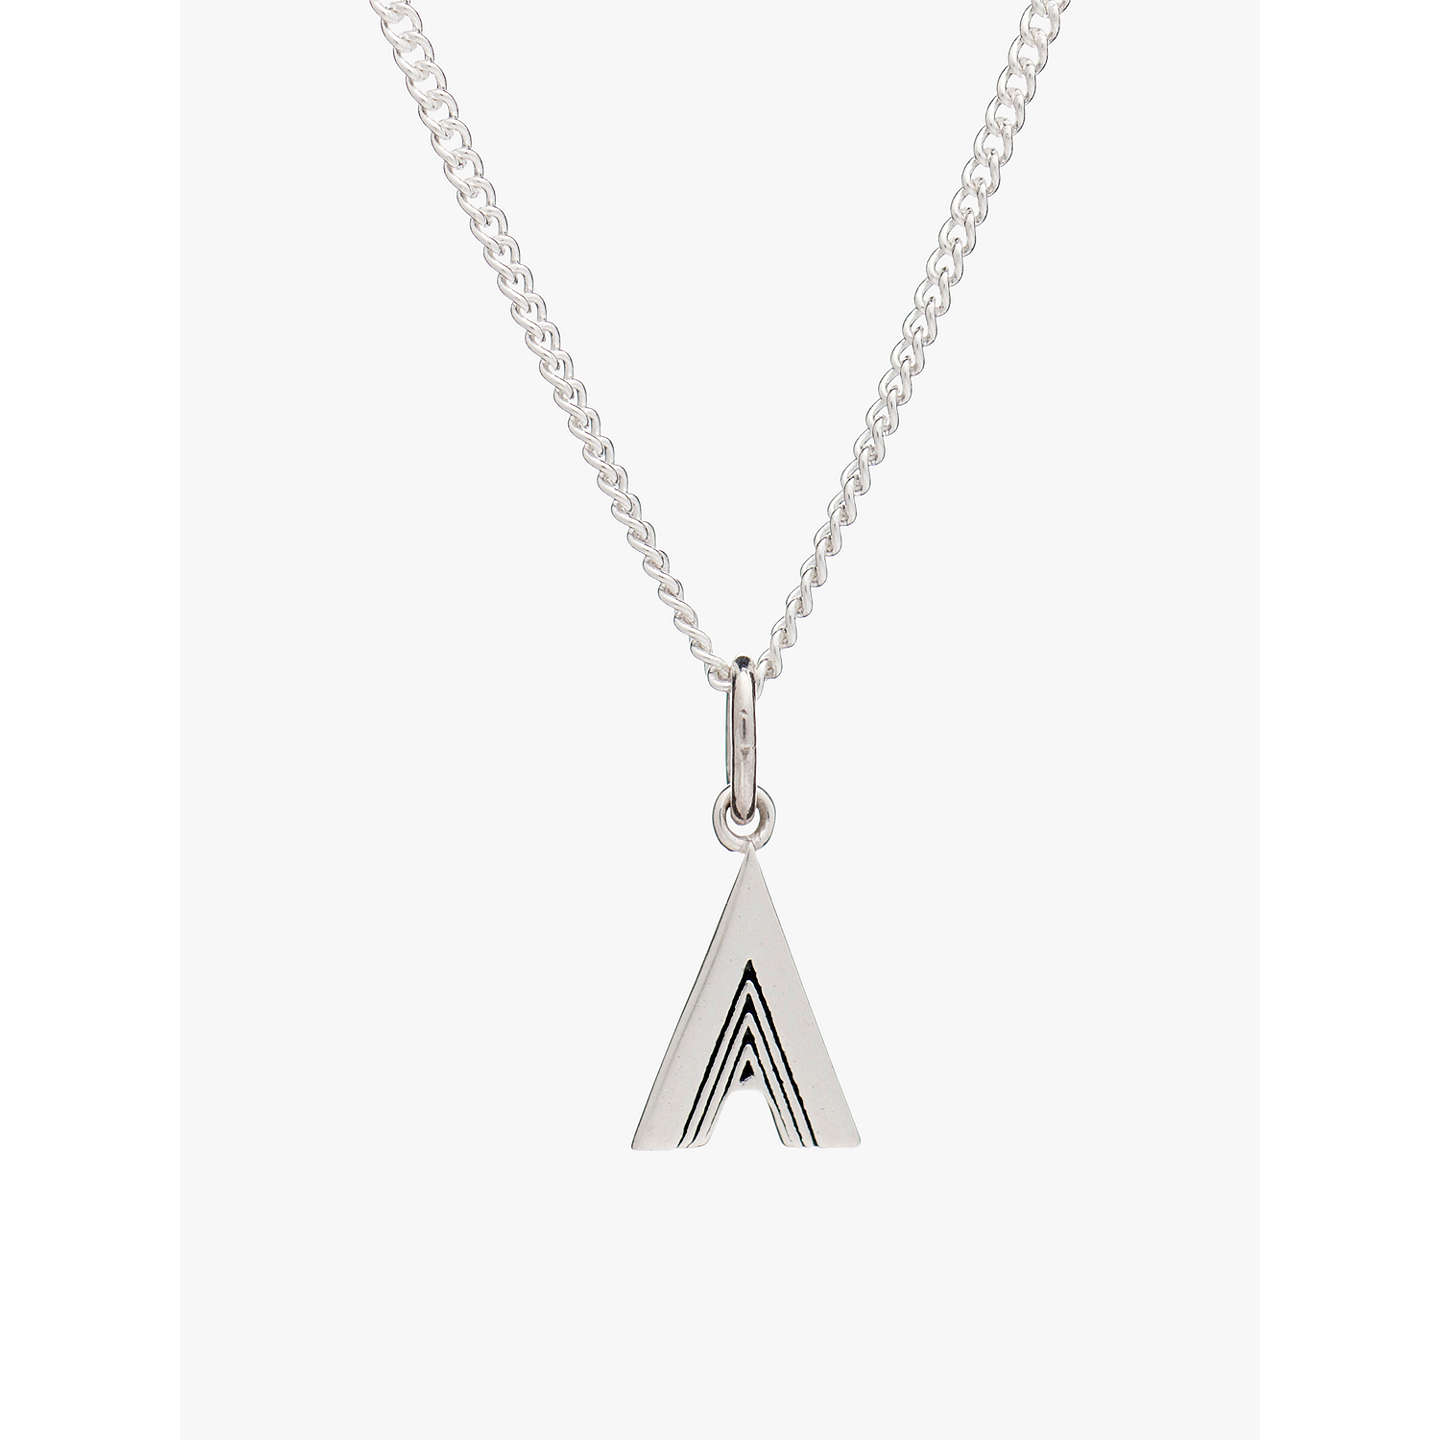 pdp necklace pendant silver jackson rsp a at main online initial sterling com london rachel johnlewis buyrachel